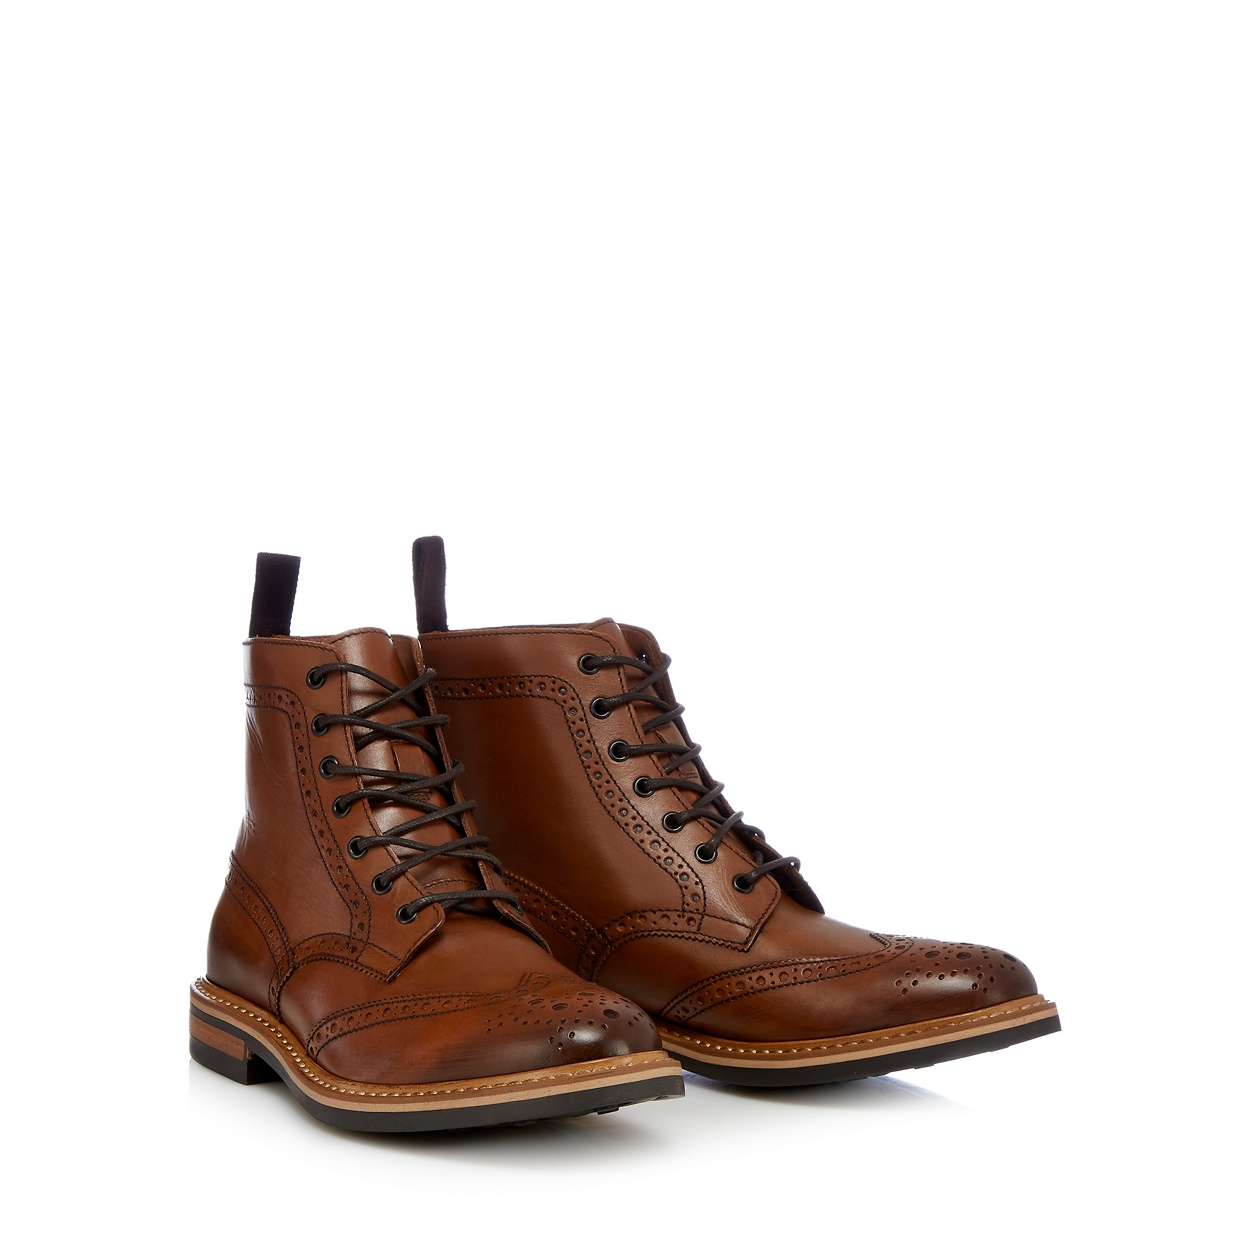 Mens leather gloves at debenhams - Hammond Co By Patrick Grant Tan Elijah Ankle High Brogue